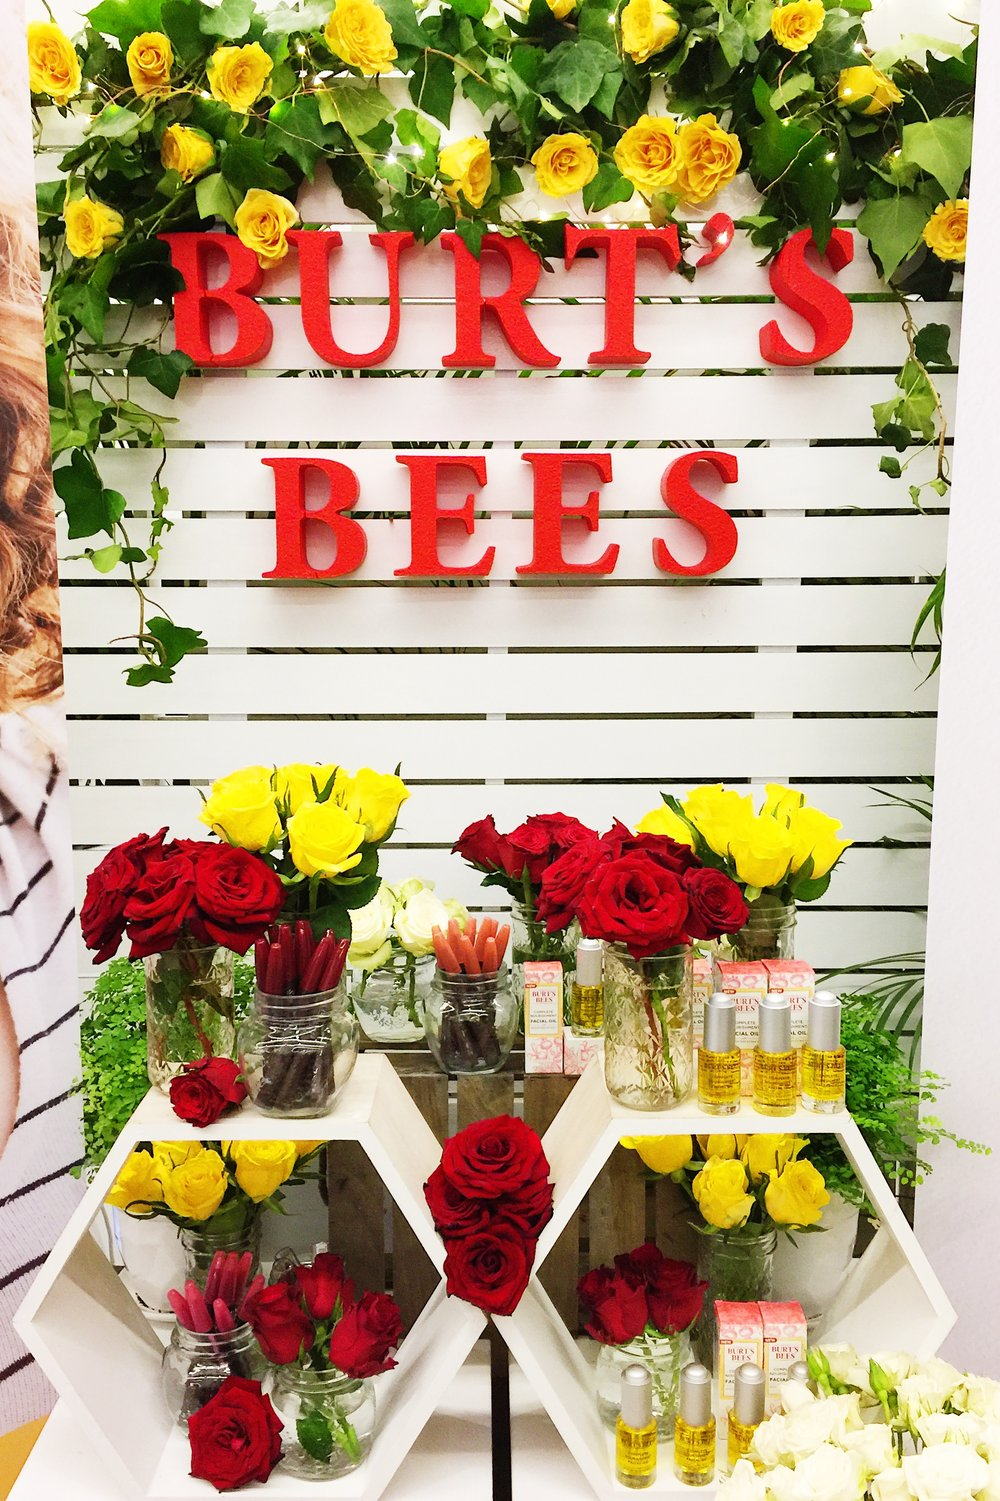 Marisa Robinson Beauty Blogger Priceline: The Beauty Prescription Event 2017 Burt's Bees